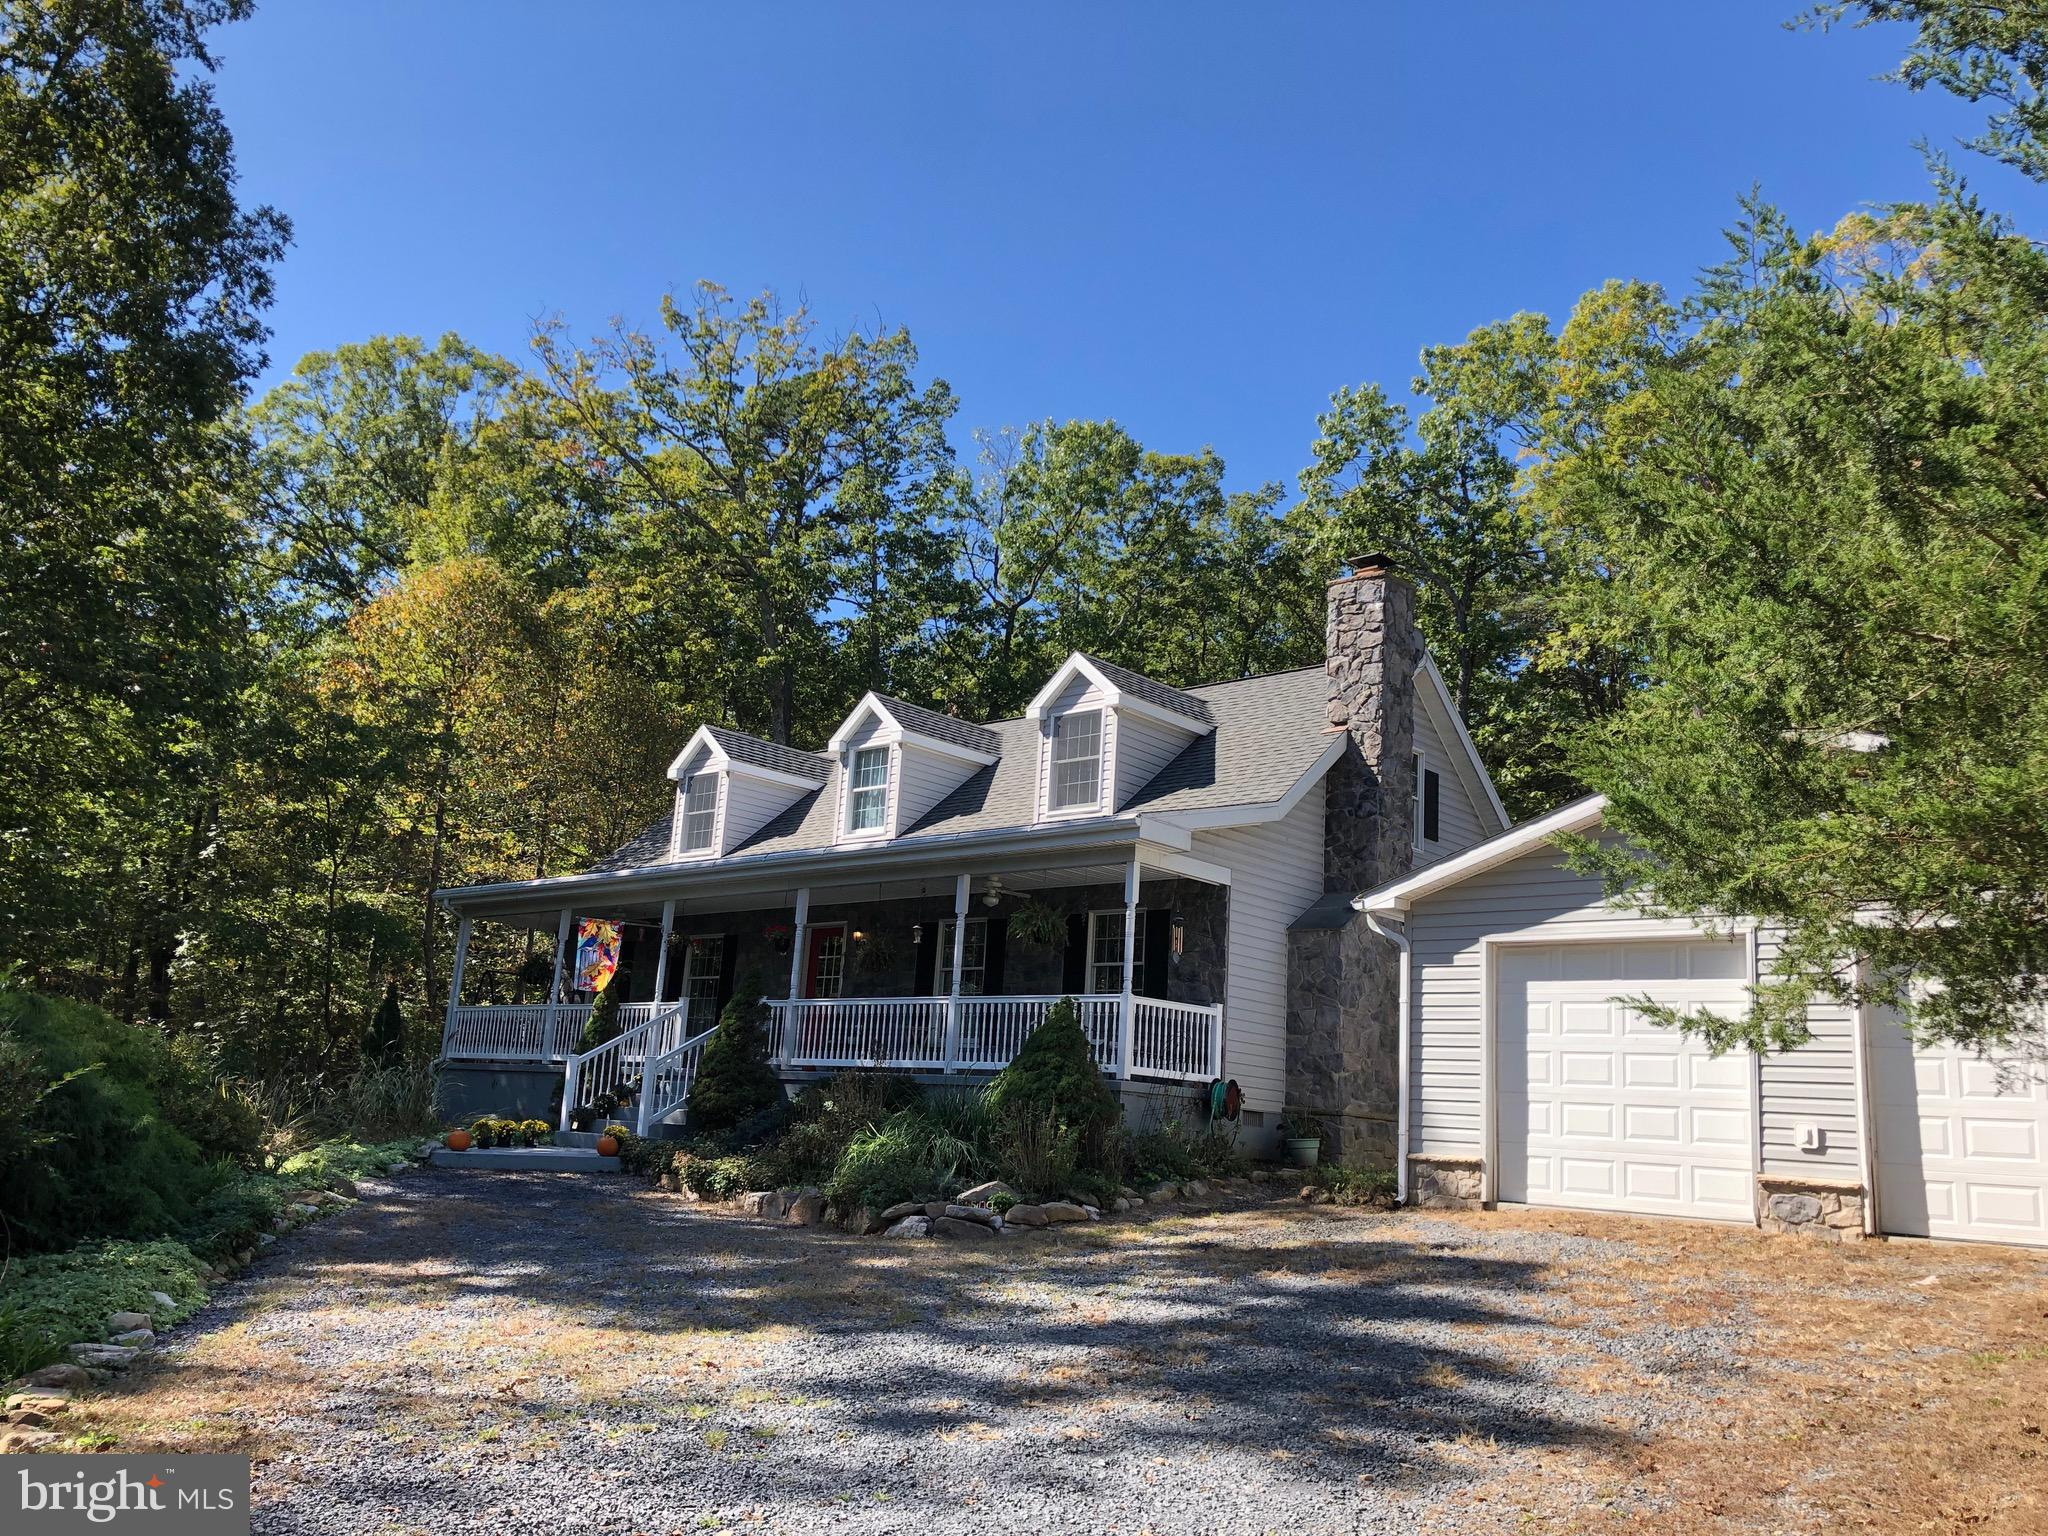 359 WHIPPOORWILL LANE, FORT VALLEY, VA 22652